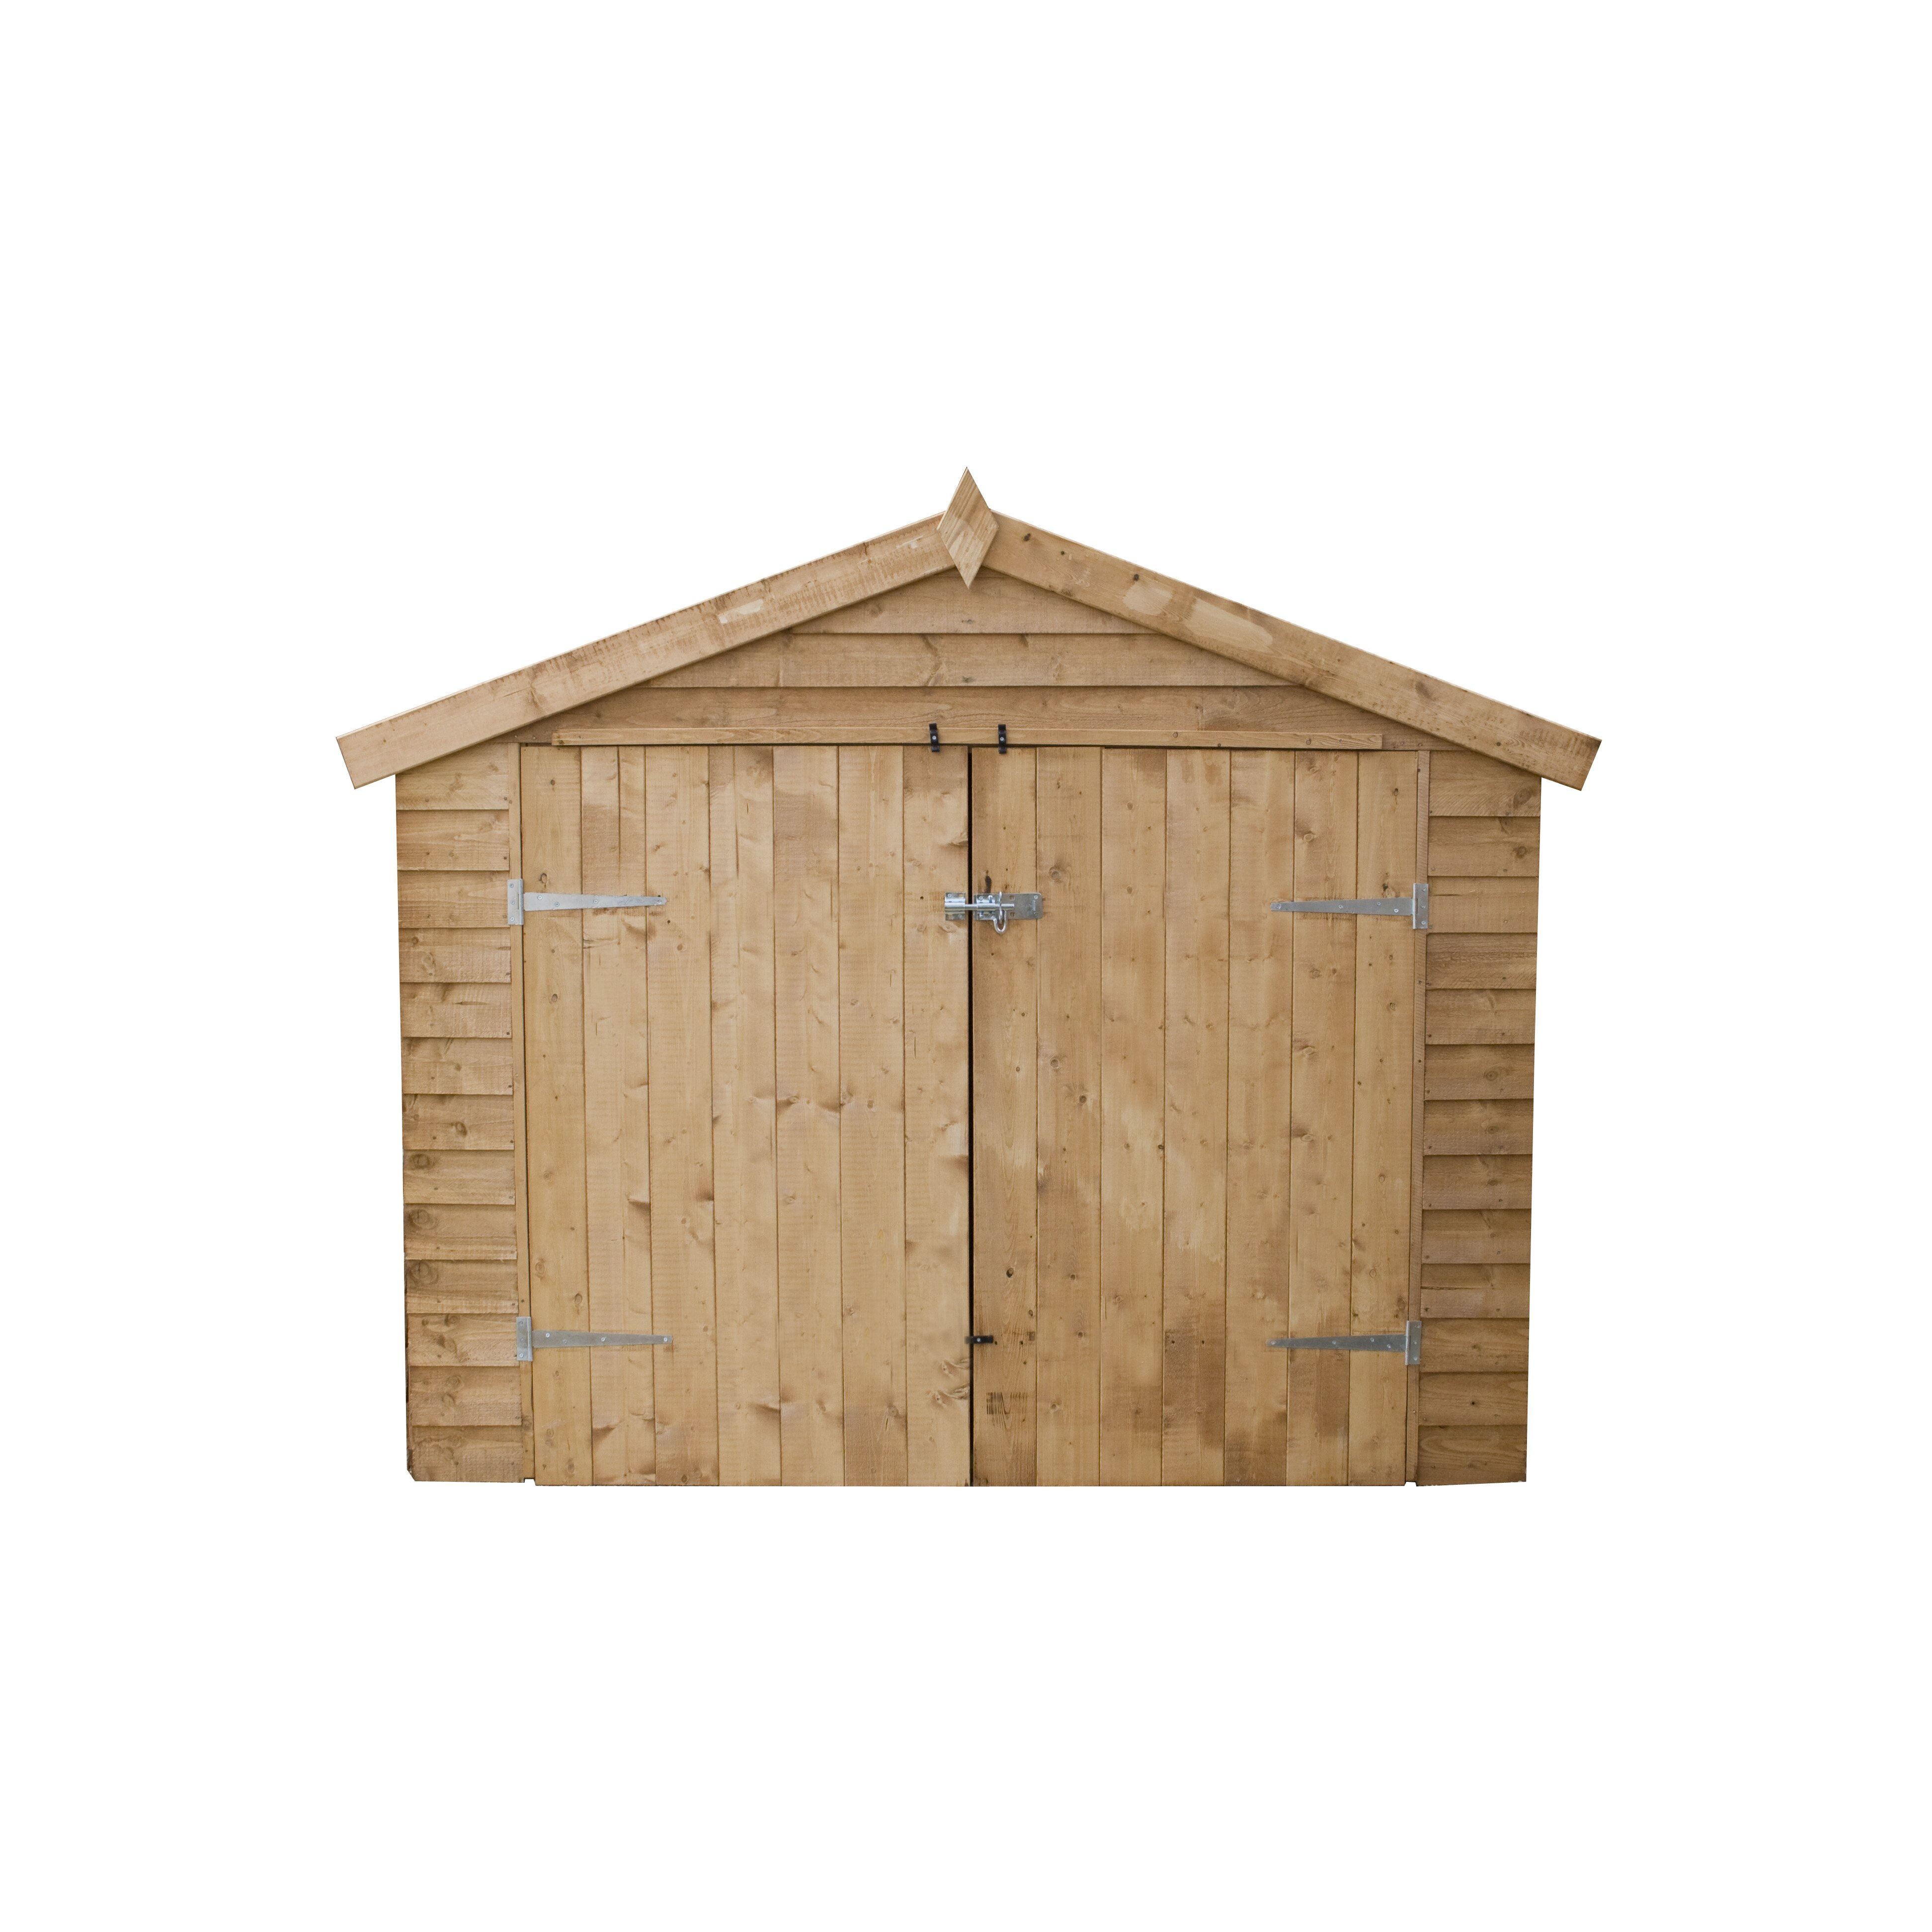 Mercia garden products 7 x 3 wooden bike shed reviews for Garden shed 7 x 3